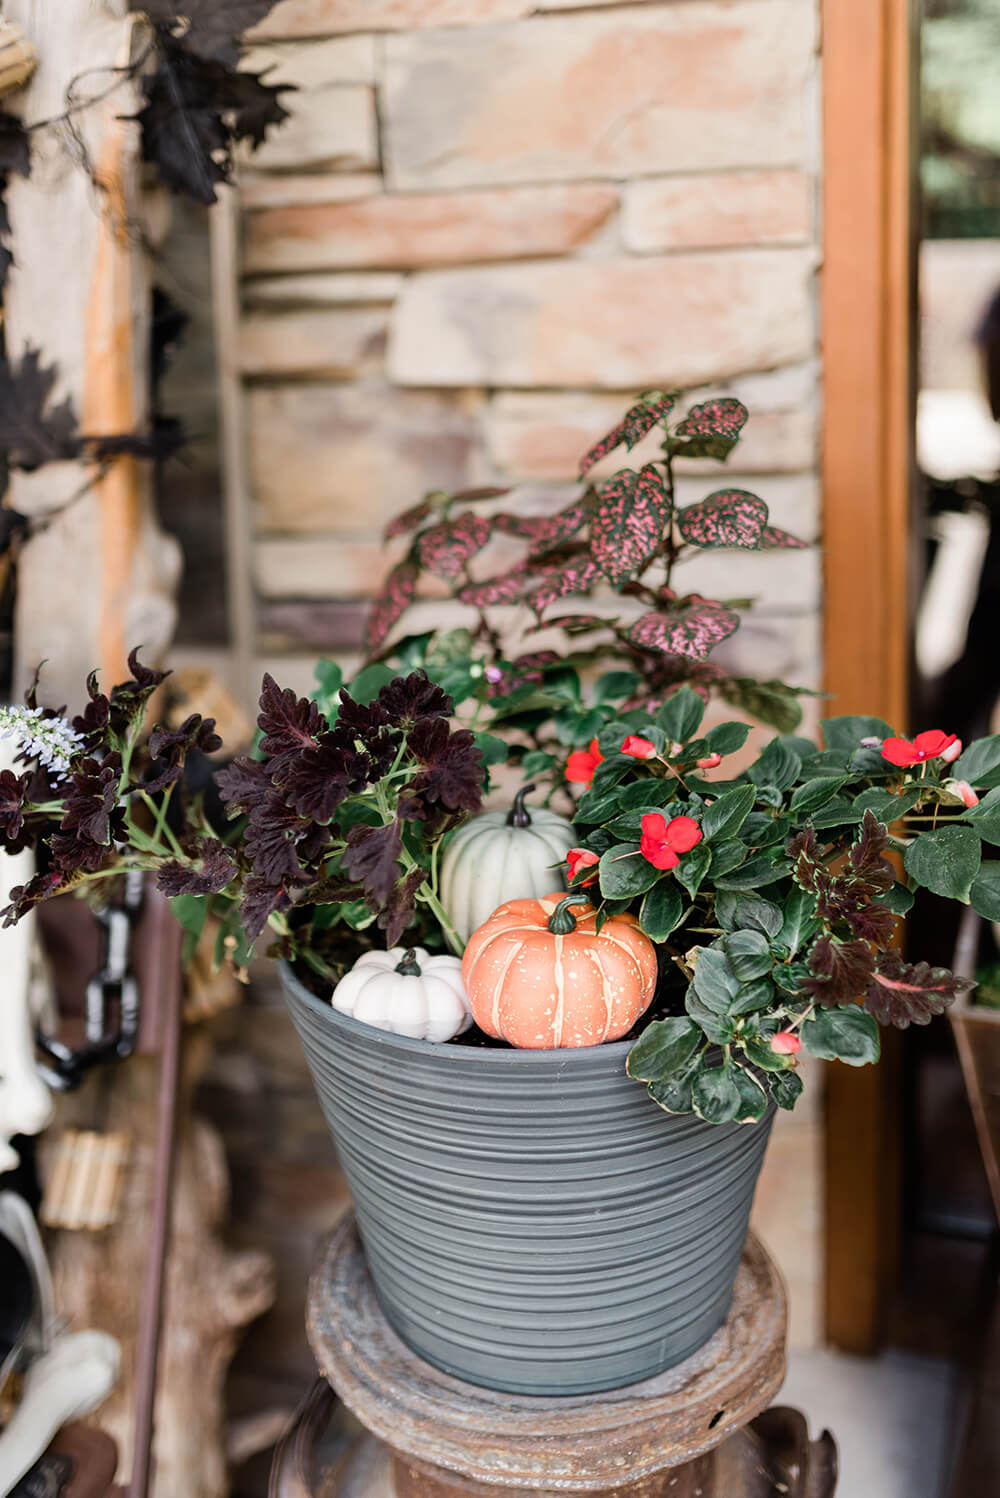 Gourds in potted plants for front porch decoration